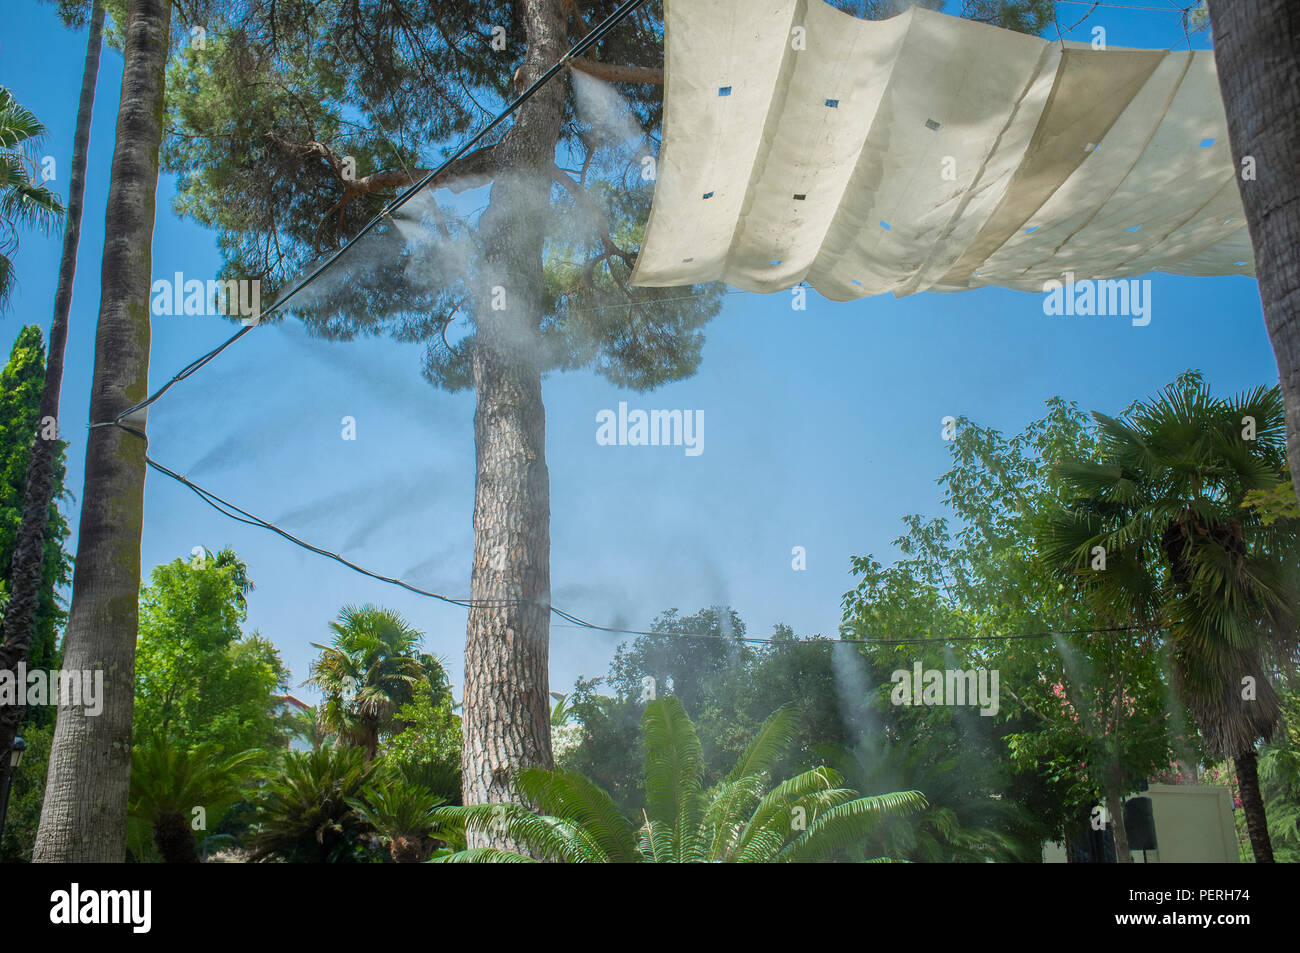 Awning and sprinklers splashing vaporized water at public park. Devices for cooling the hot summer temperature in Spain outdoors - Stock Image